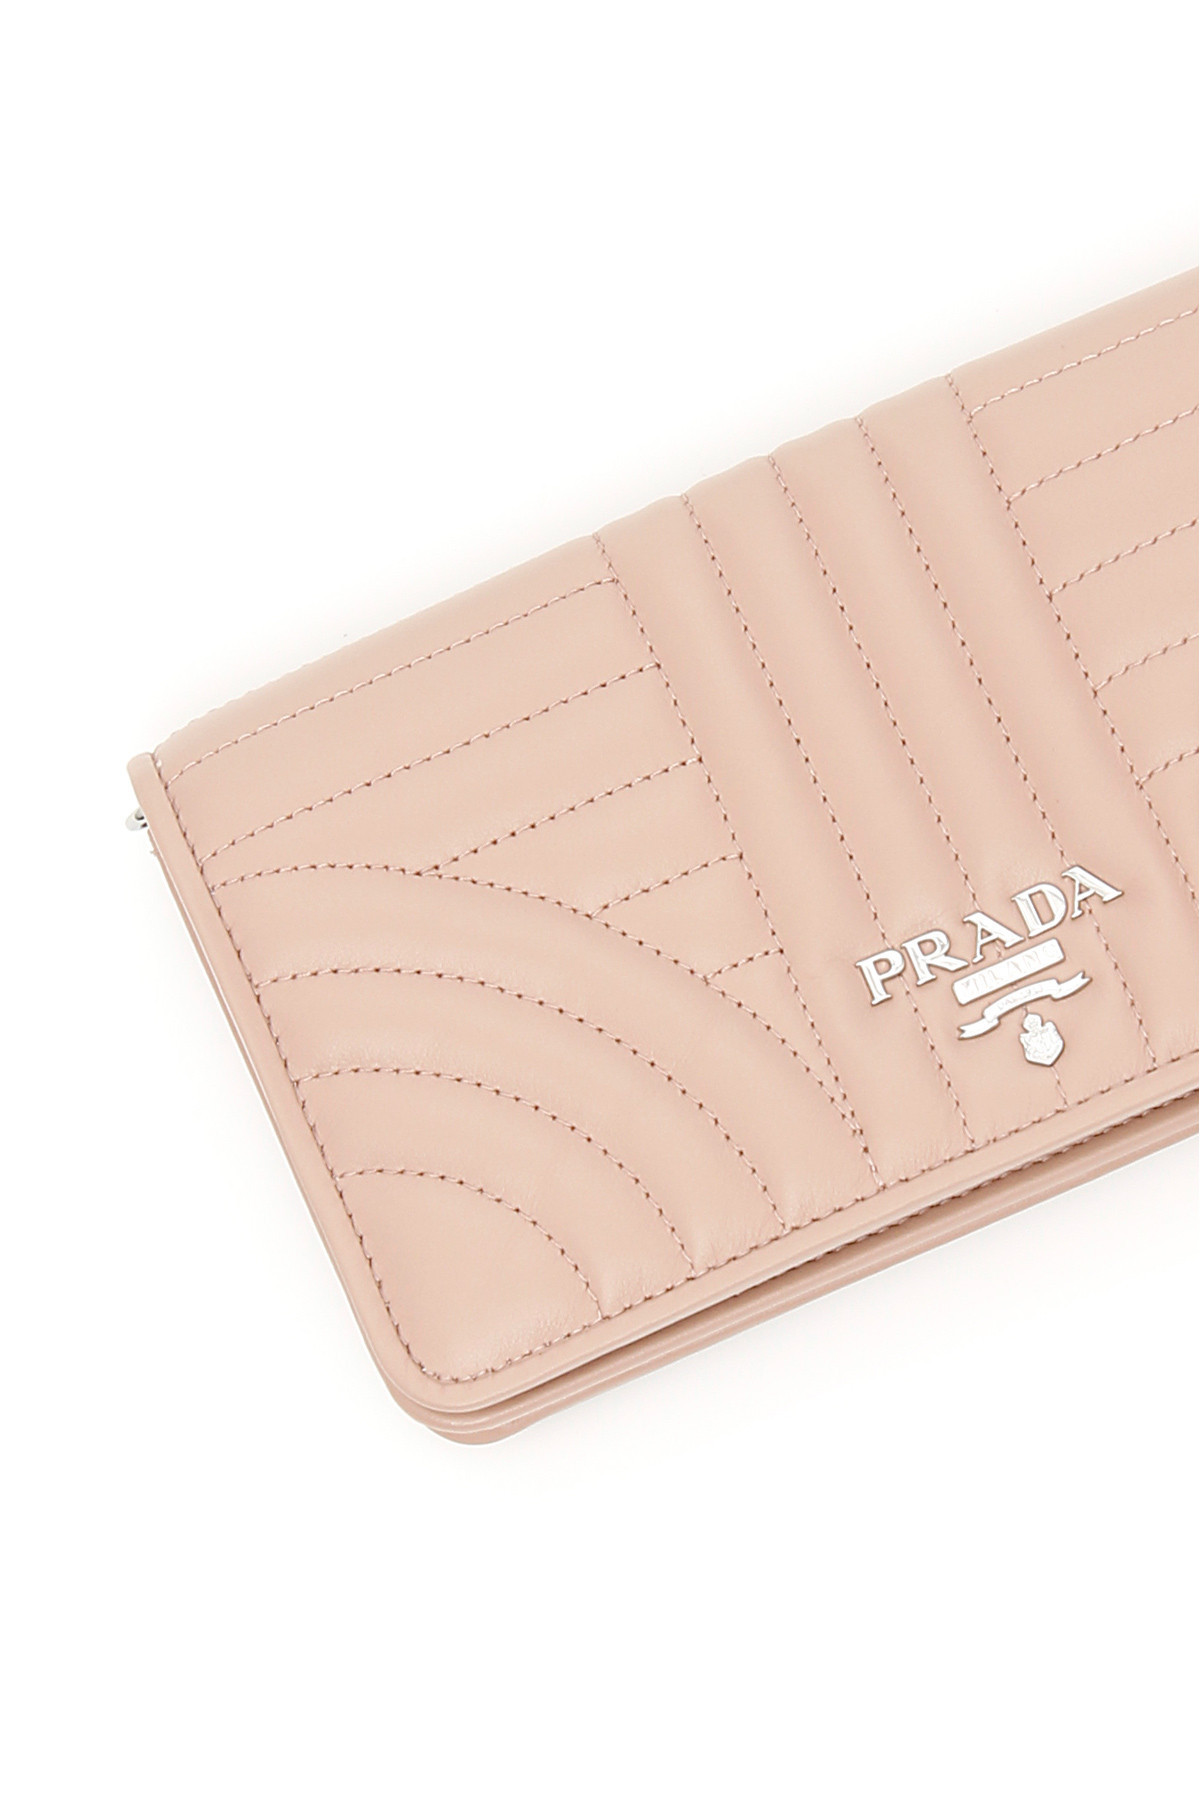 PRADA プレゼントにも! Diagramme Leather Iphone Case